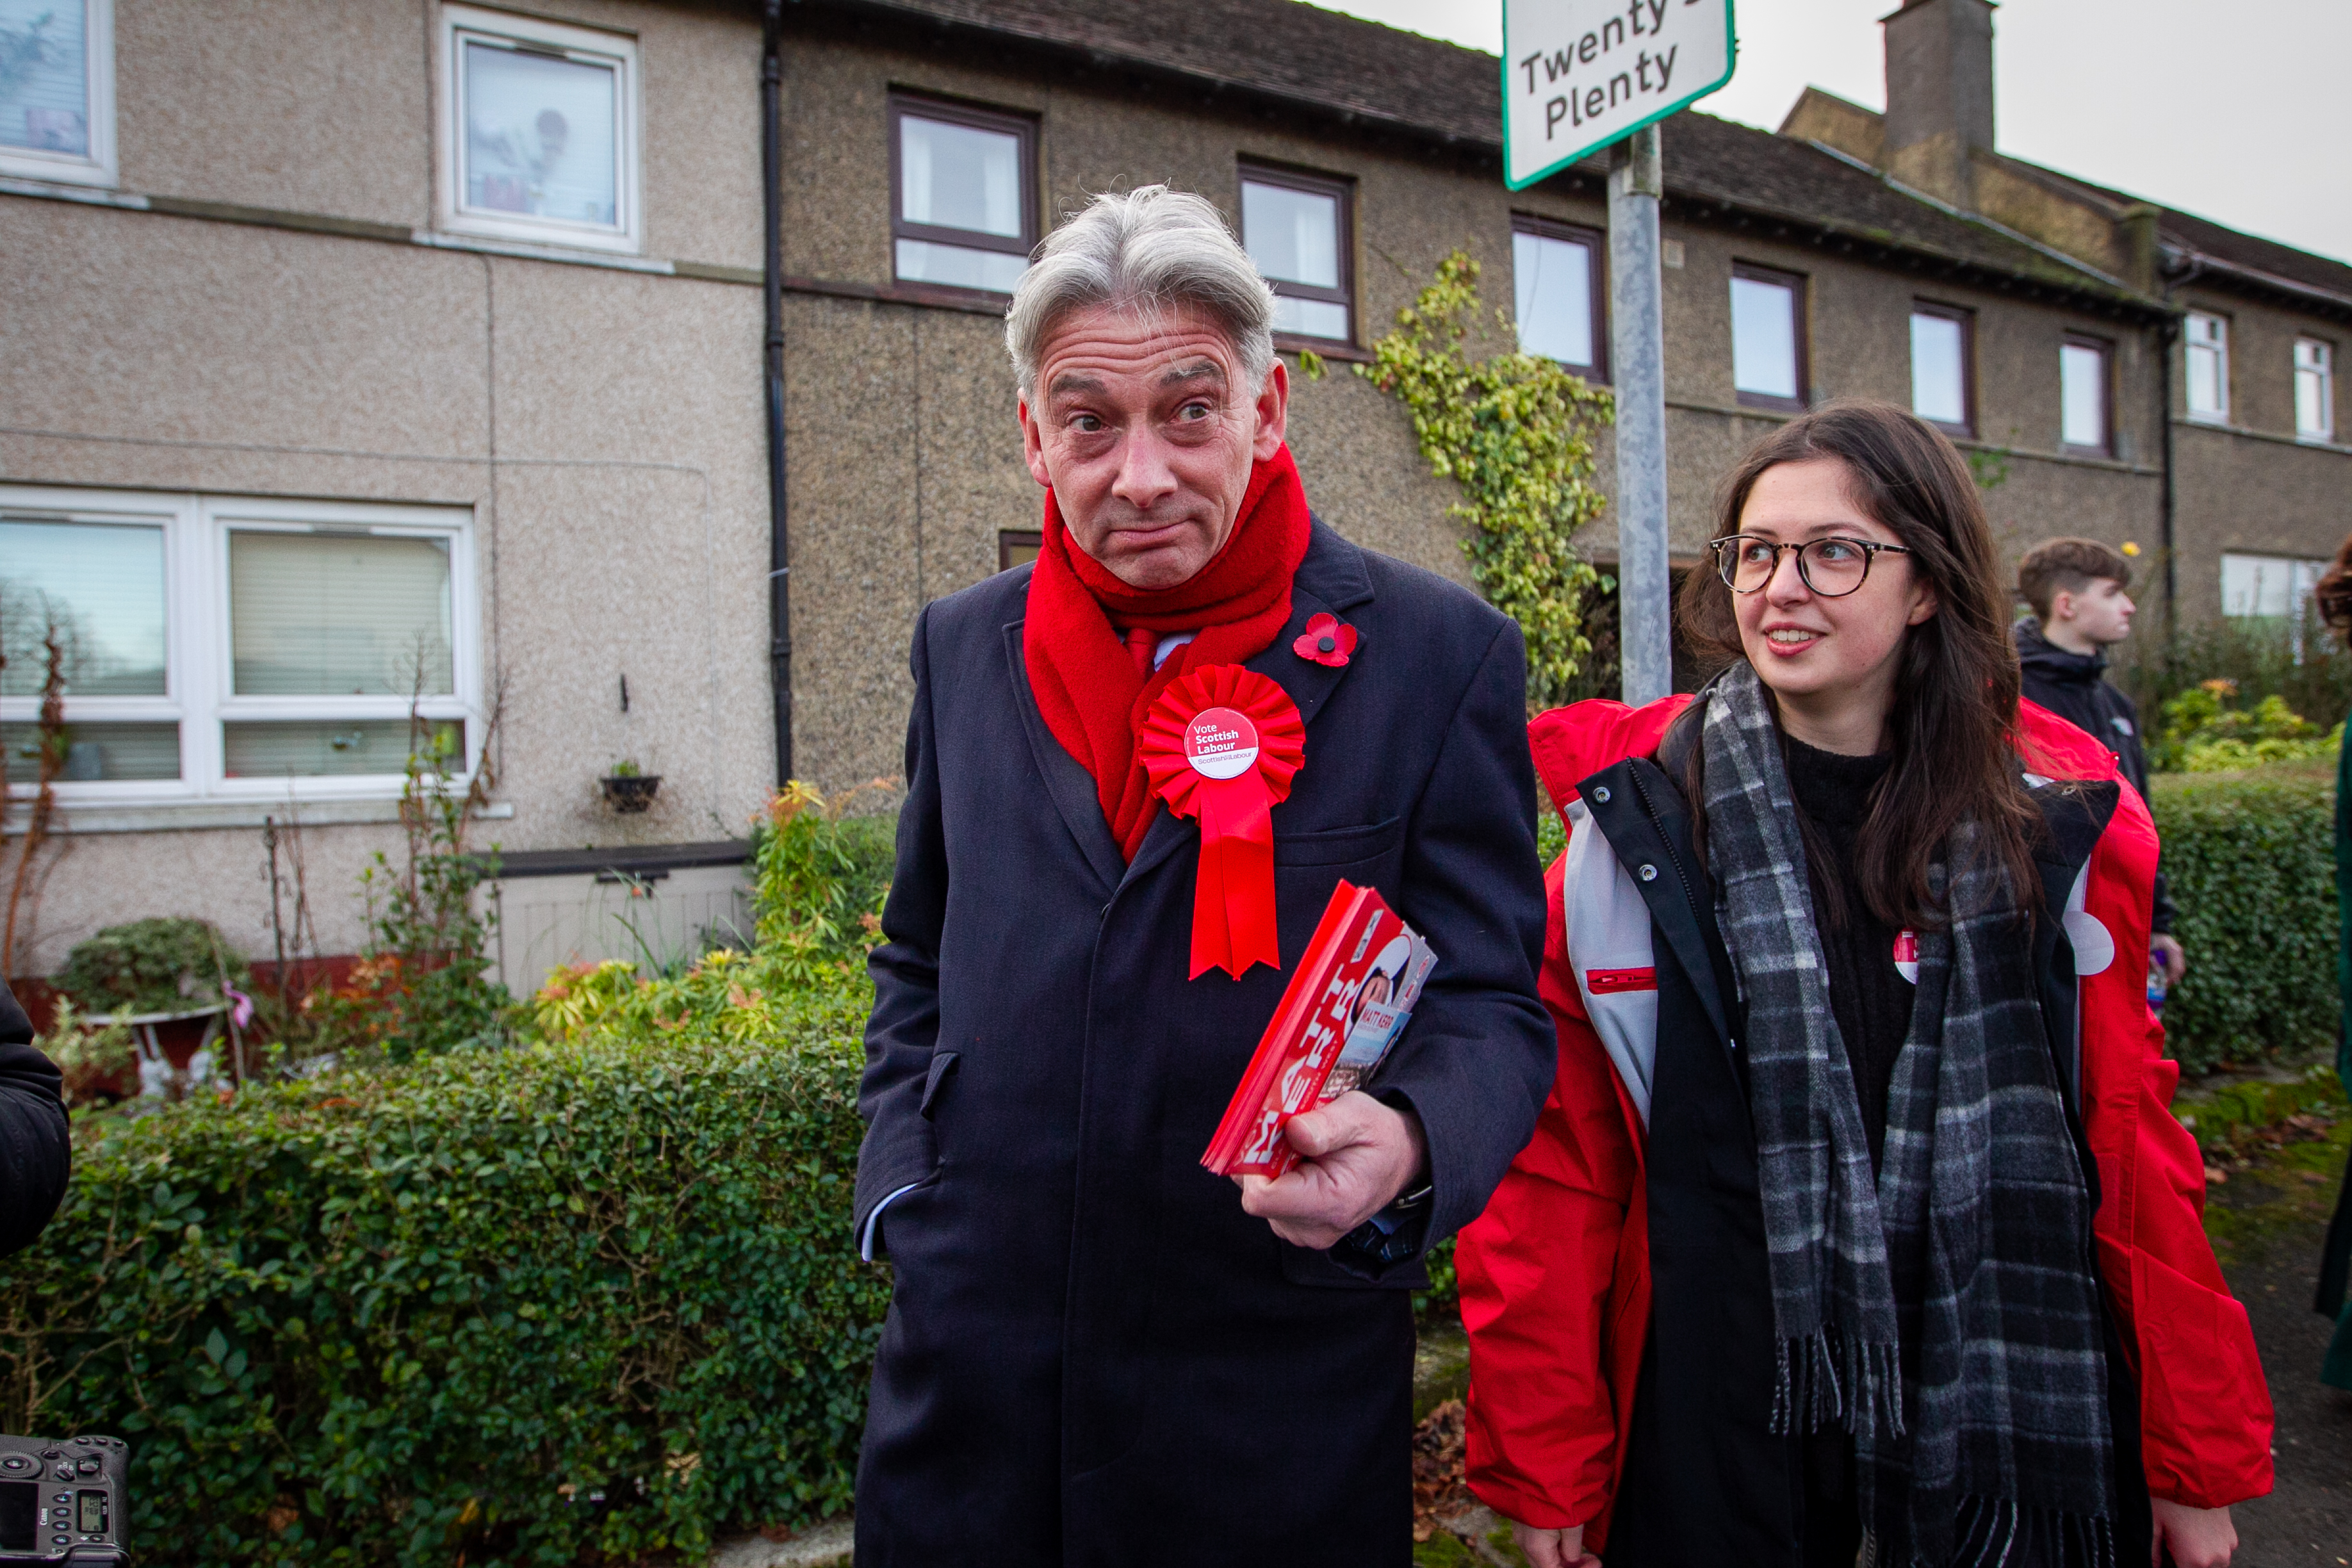 Scottish Labour leader Richard Leonard on the campaign trail.